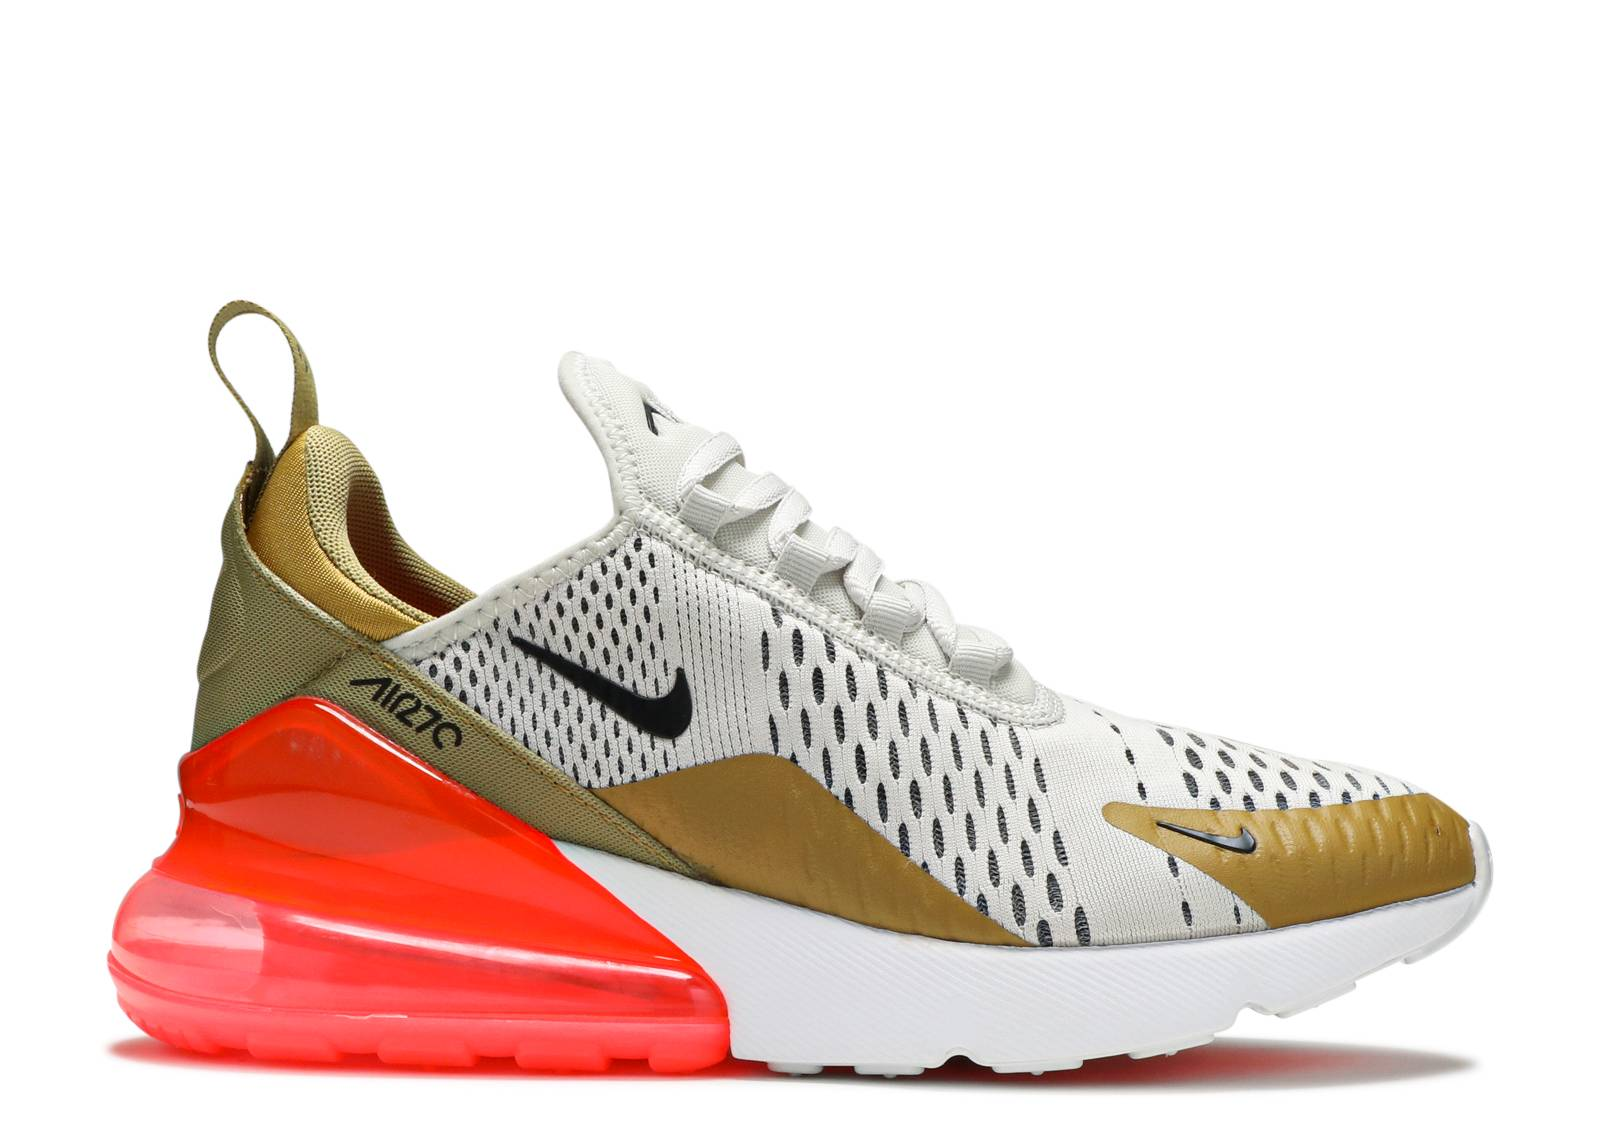 Nike WMNS Air Max 270 Flight GoldBlack Light Bone White Hot Punch Shoes